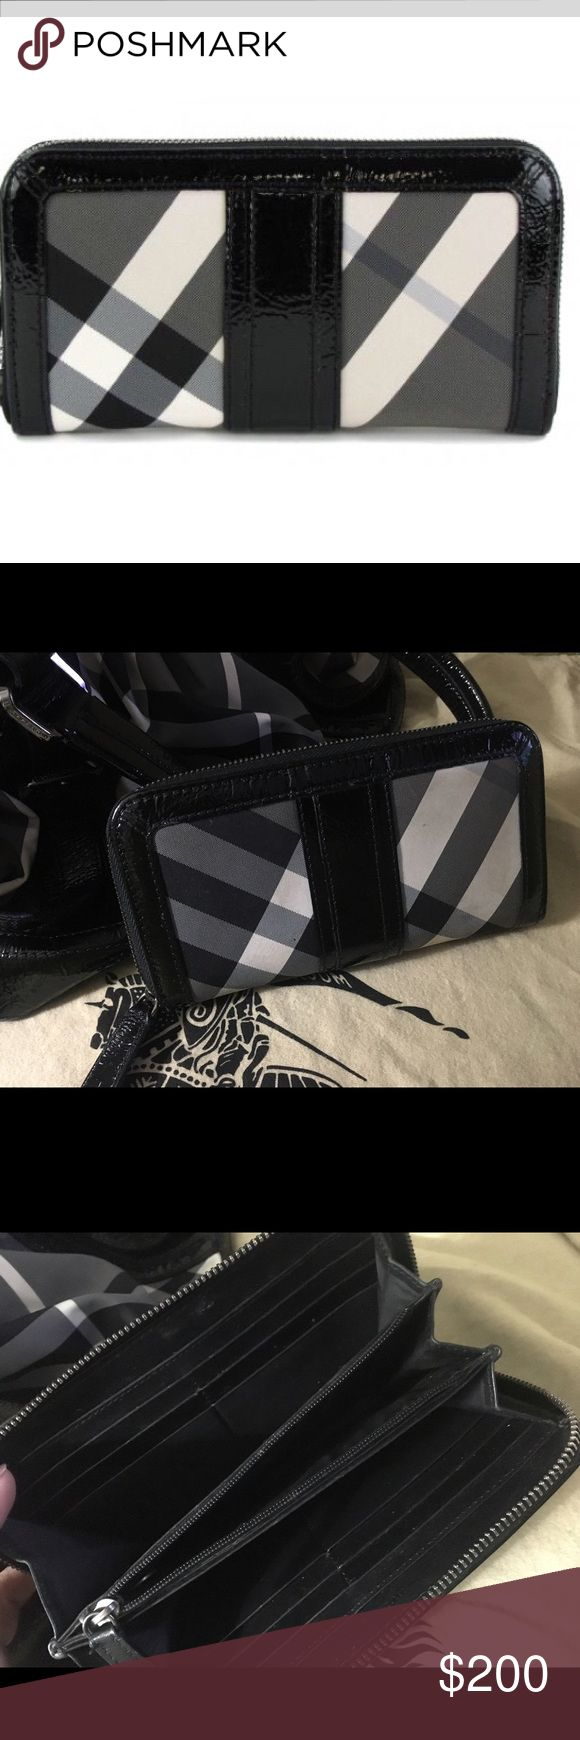 Burberry Beat Check Black Nylon Zip Around Wallet Black, charcoal and white nylon Burberry Beat check zip wallet with black leather trim, twelve card slots, dual wall slip pockets, center zip pouch and zip-around closure. Great condition! Also have matching tote listed! Burberry Bags Wallets